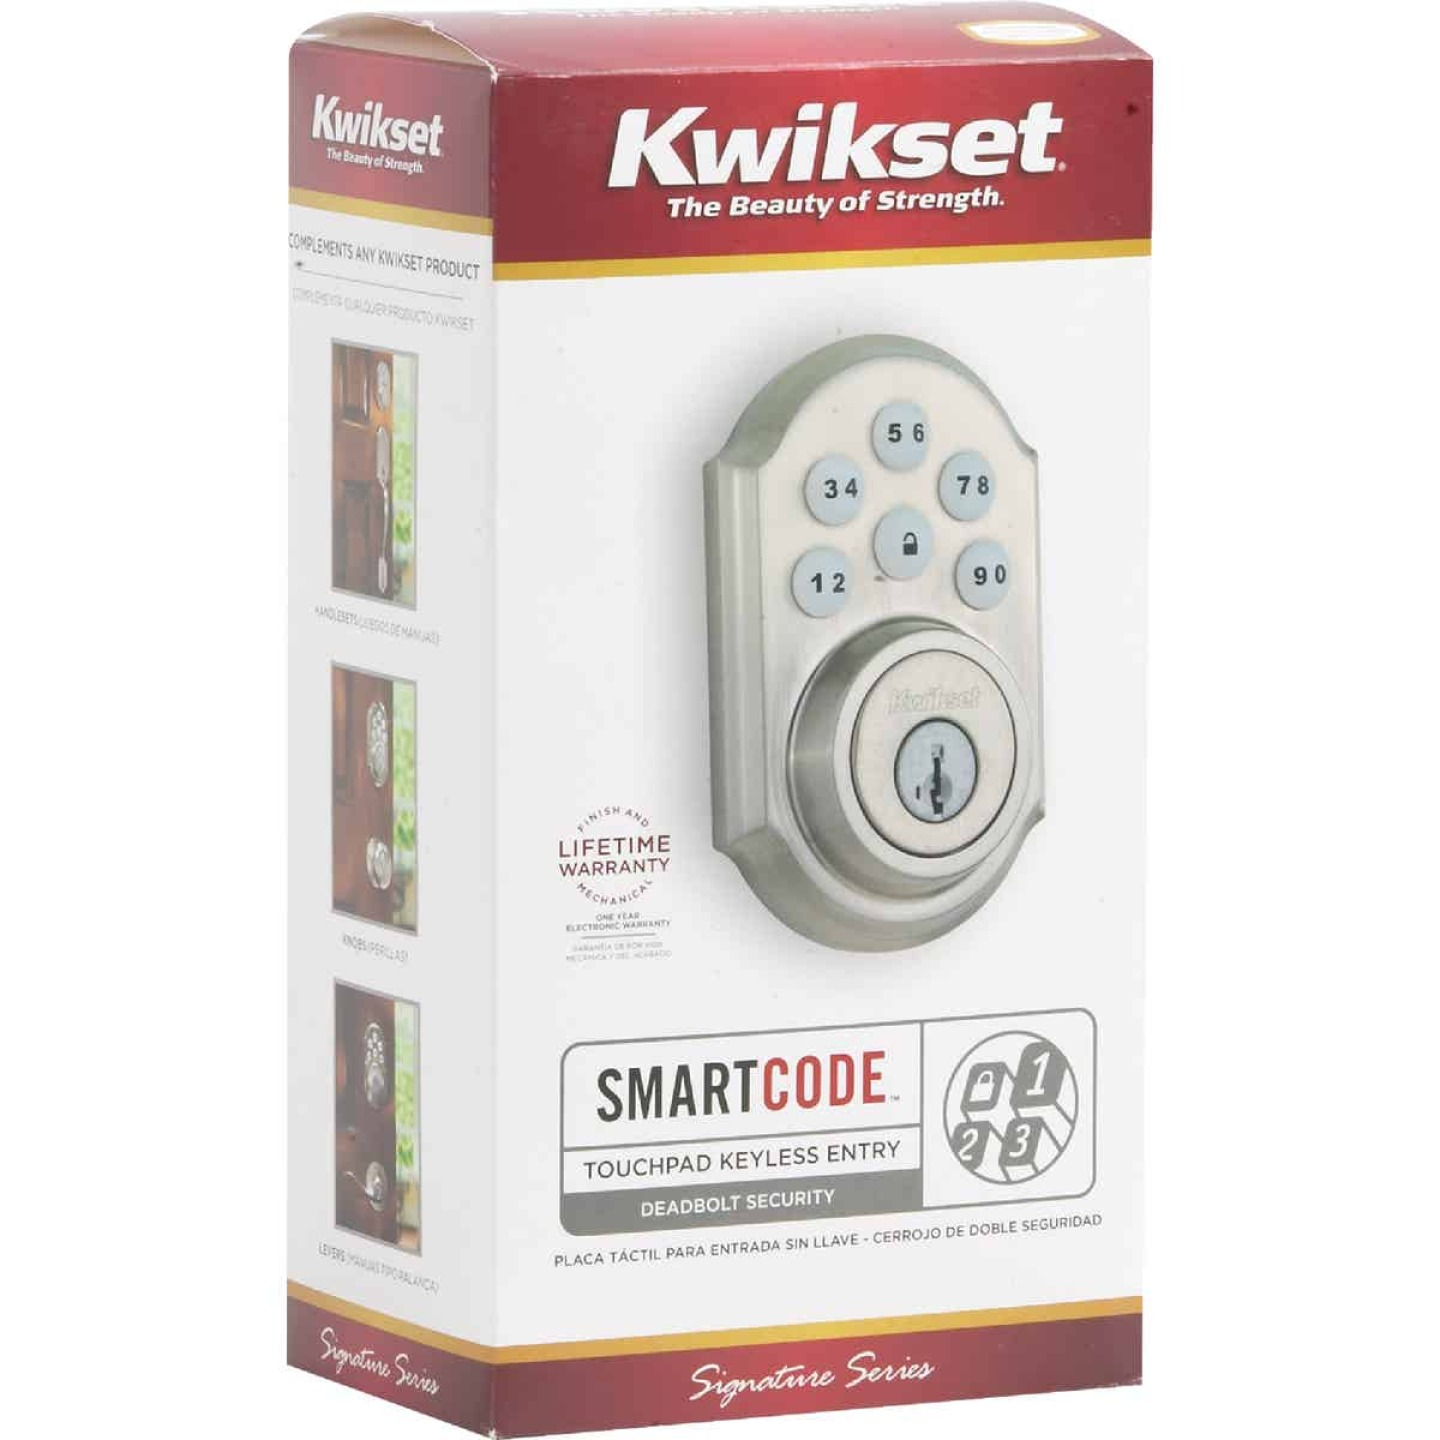 Kwikset Signature Series SmartCode Satin Nickel Electronic Deadbolt Image 7